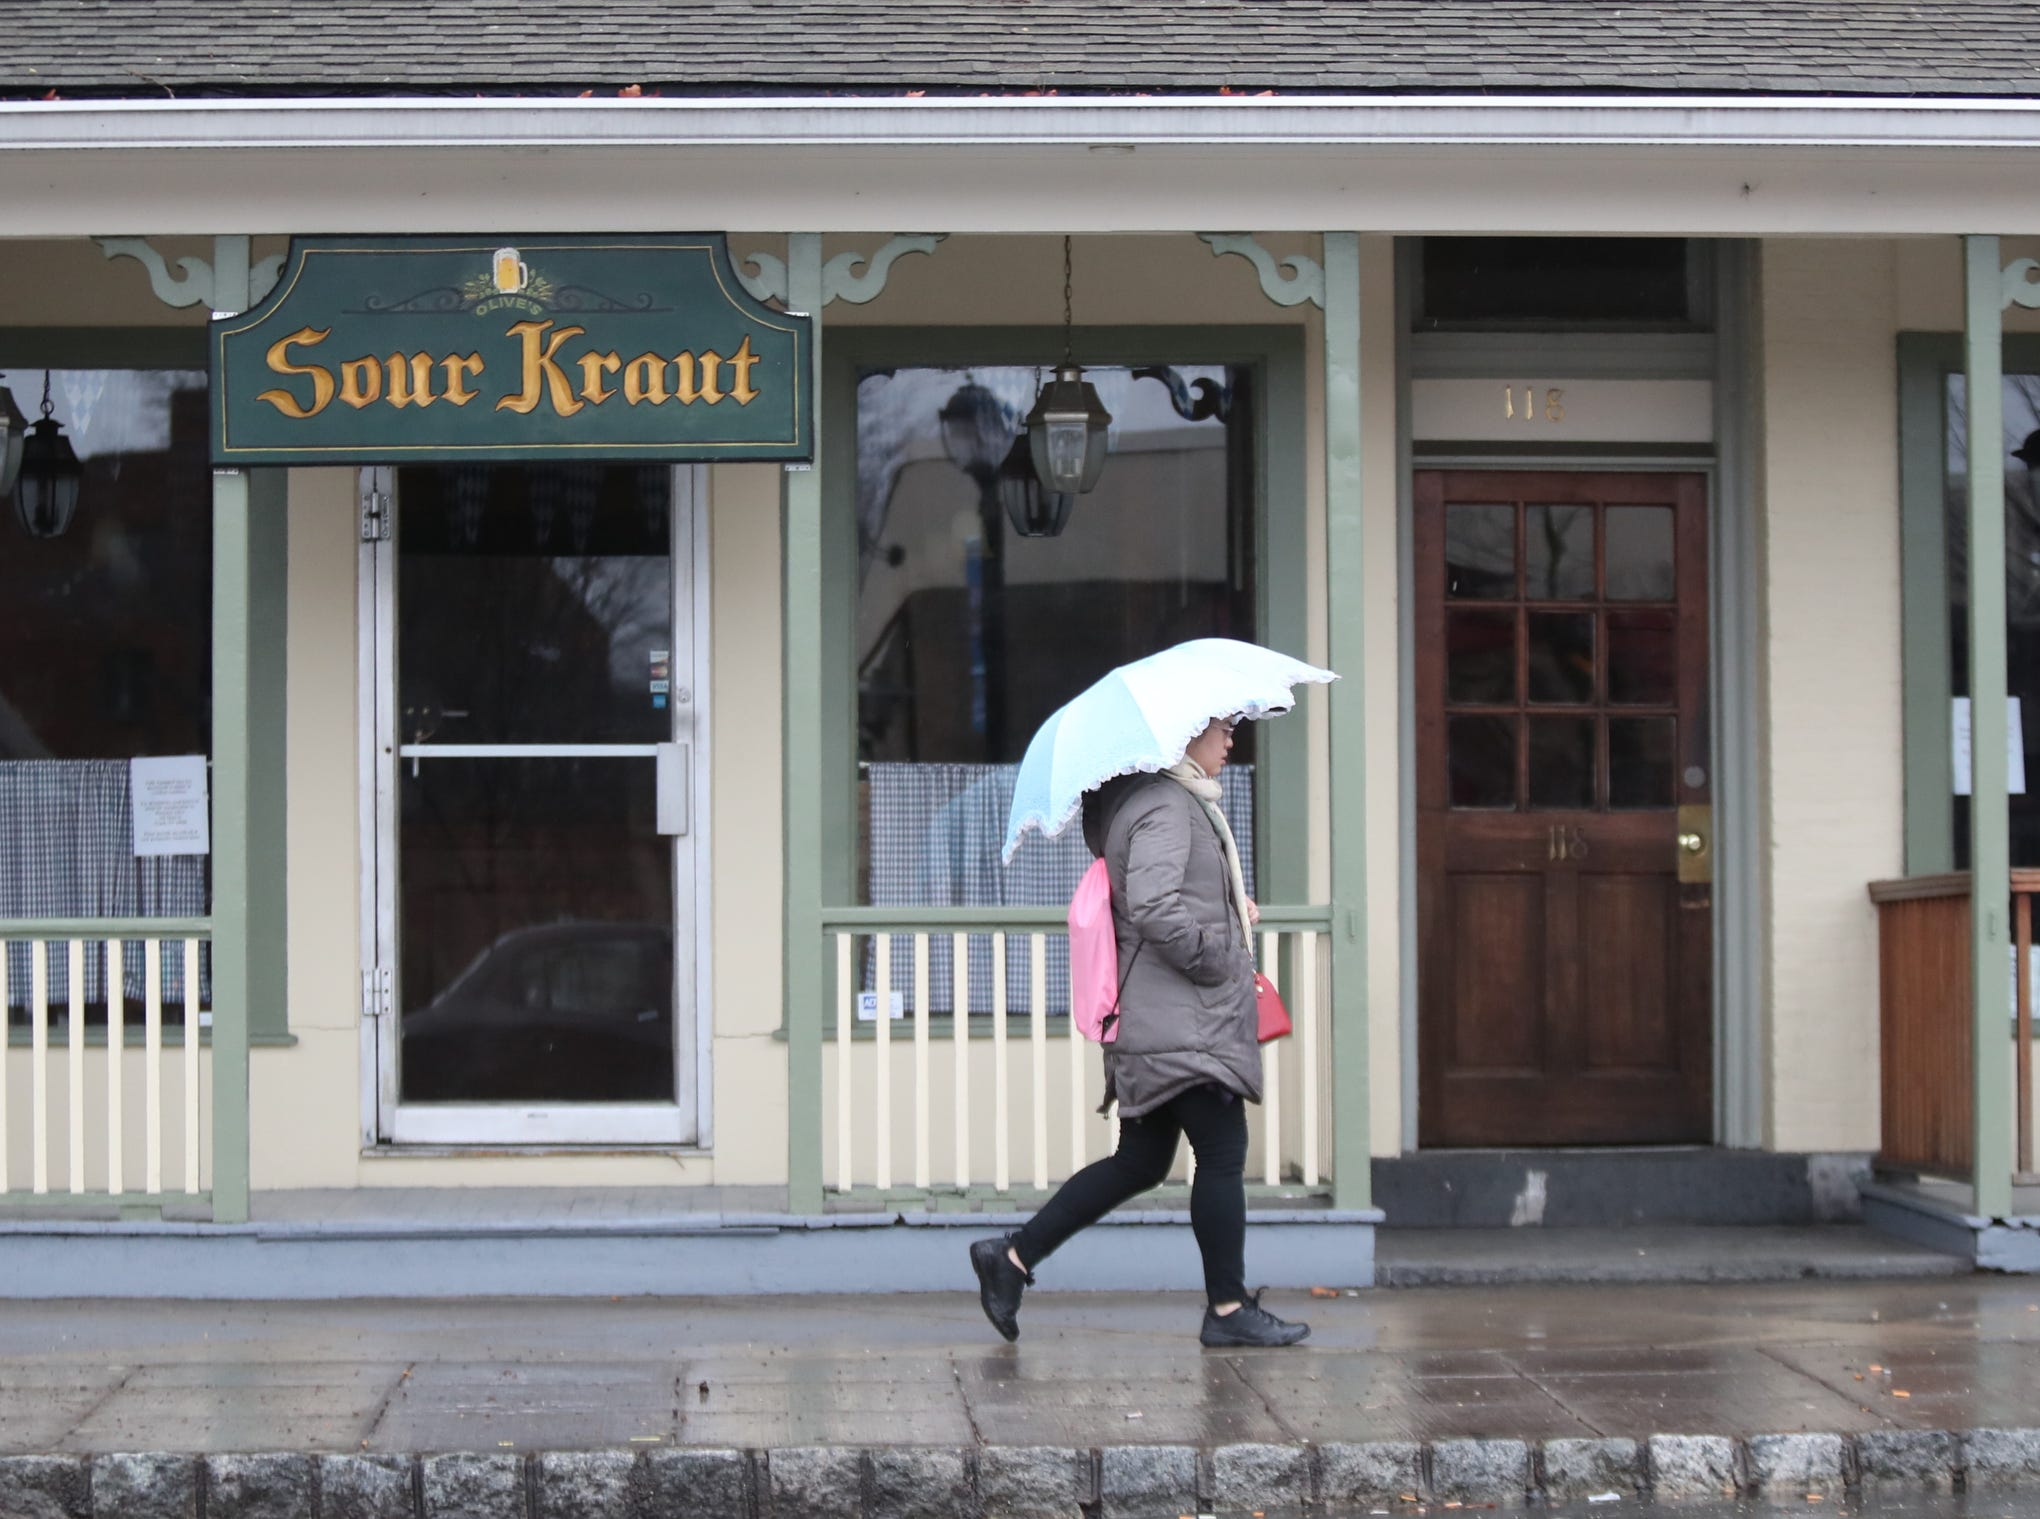 People walk with umbrellas along Main St. in Nyack on Sunday, January 20, 2019.